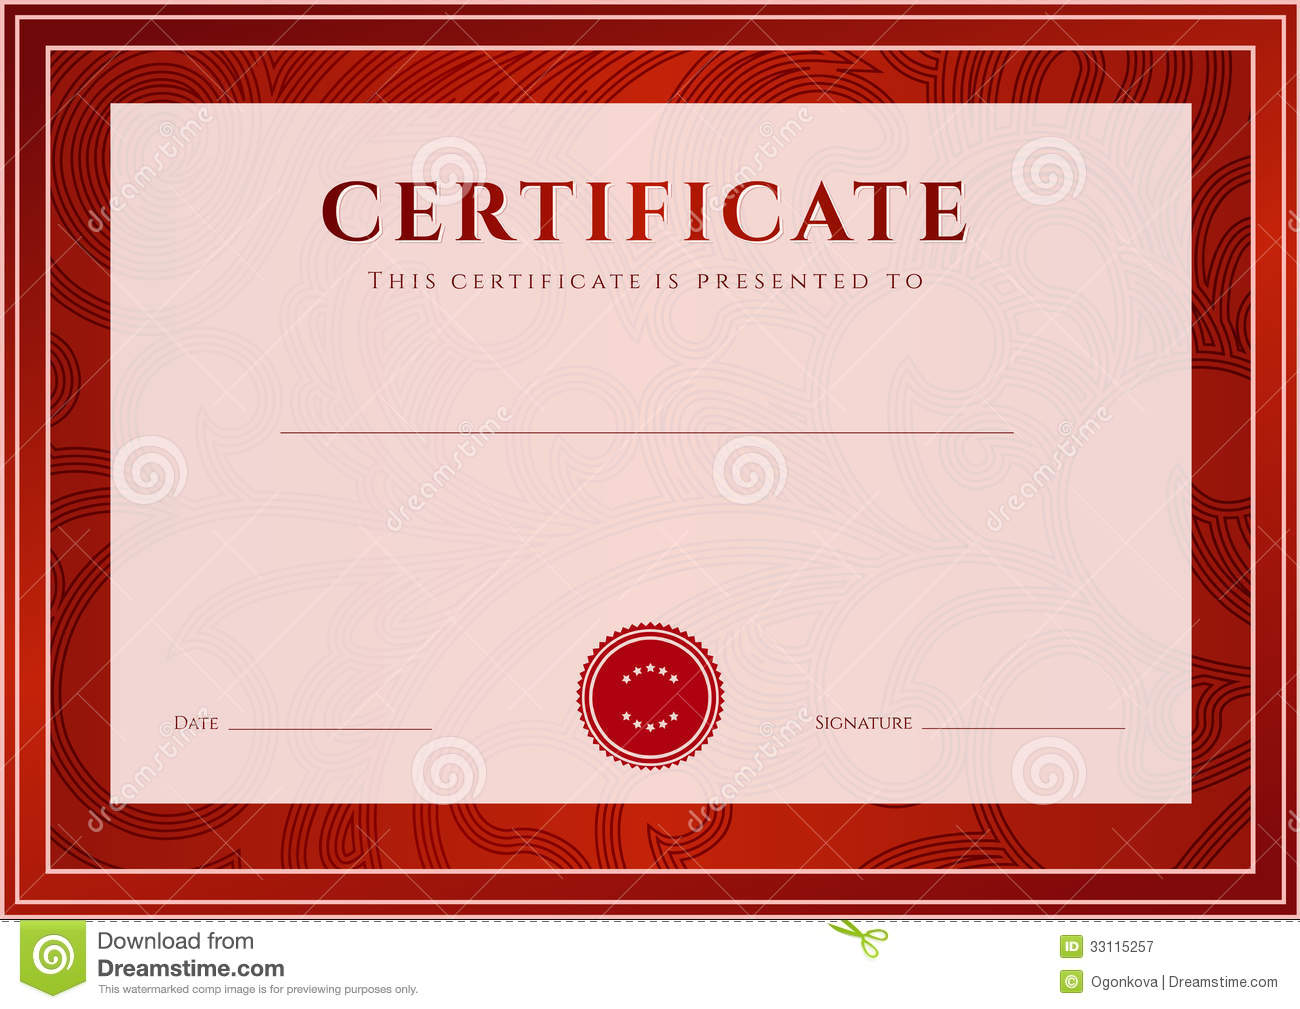 Award certificate template online image collections certificate completion award certificate template online resume creator completion award certificate template yadclub image collections yadclub Image collections